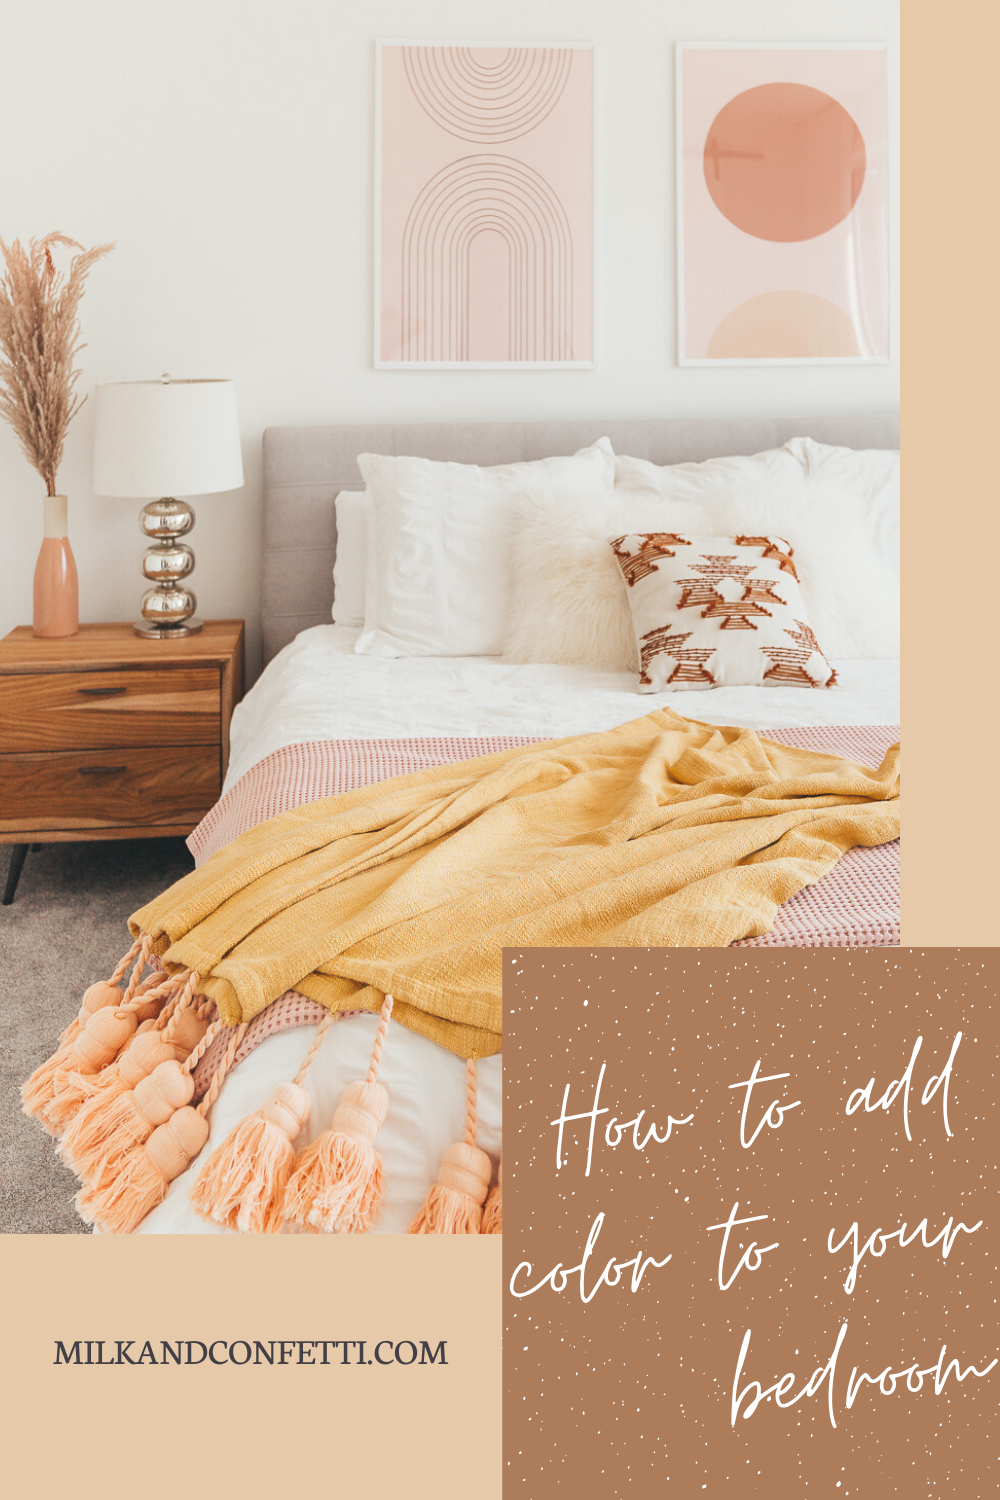 A boho master bedroom with blush and mustard accents on a mid century bed frame next to some pampas grasses.